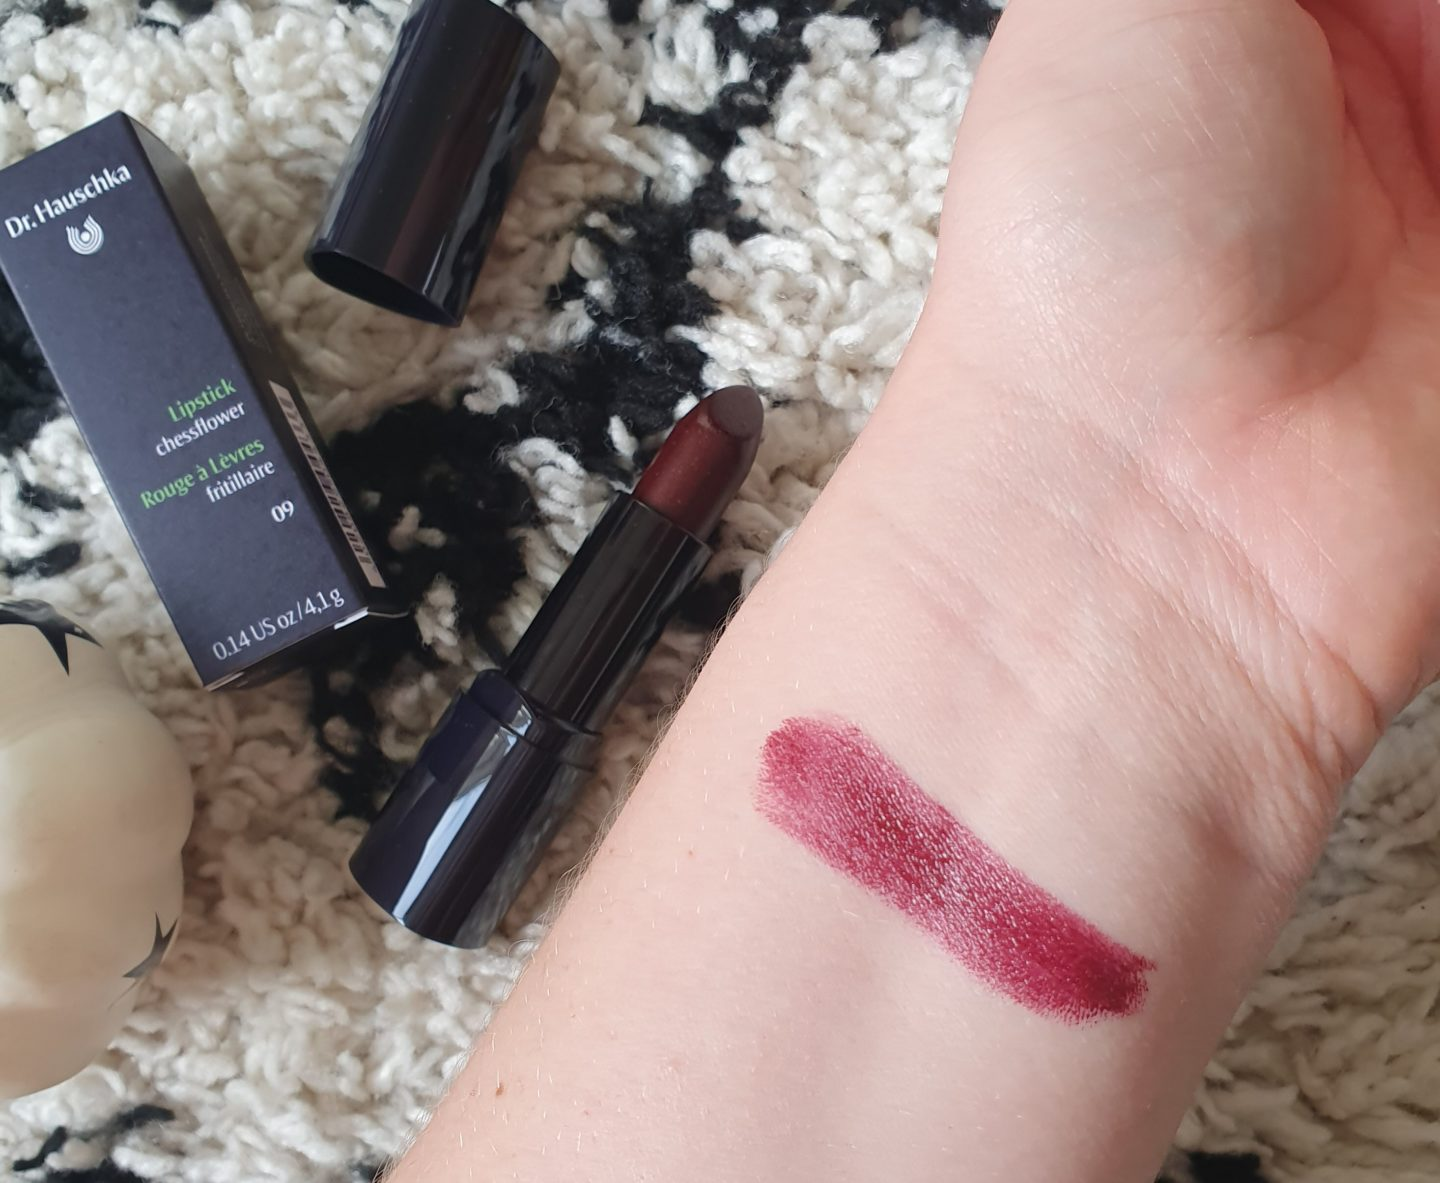 Dr Hauschka Lipstick in shade Chessflower swatch